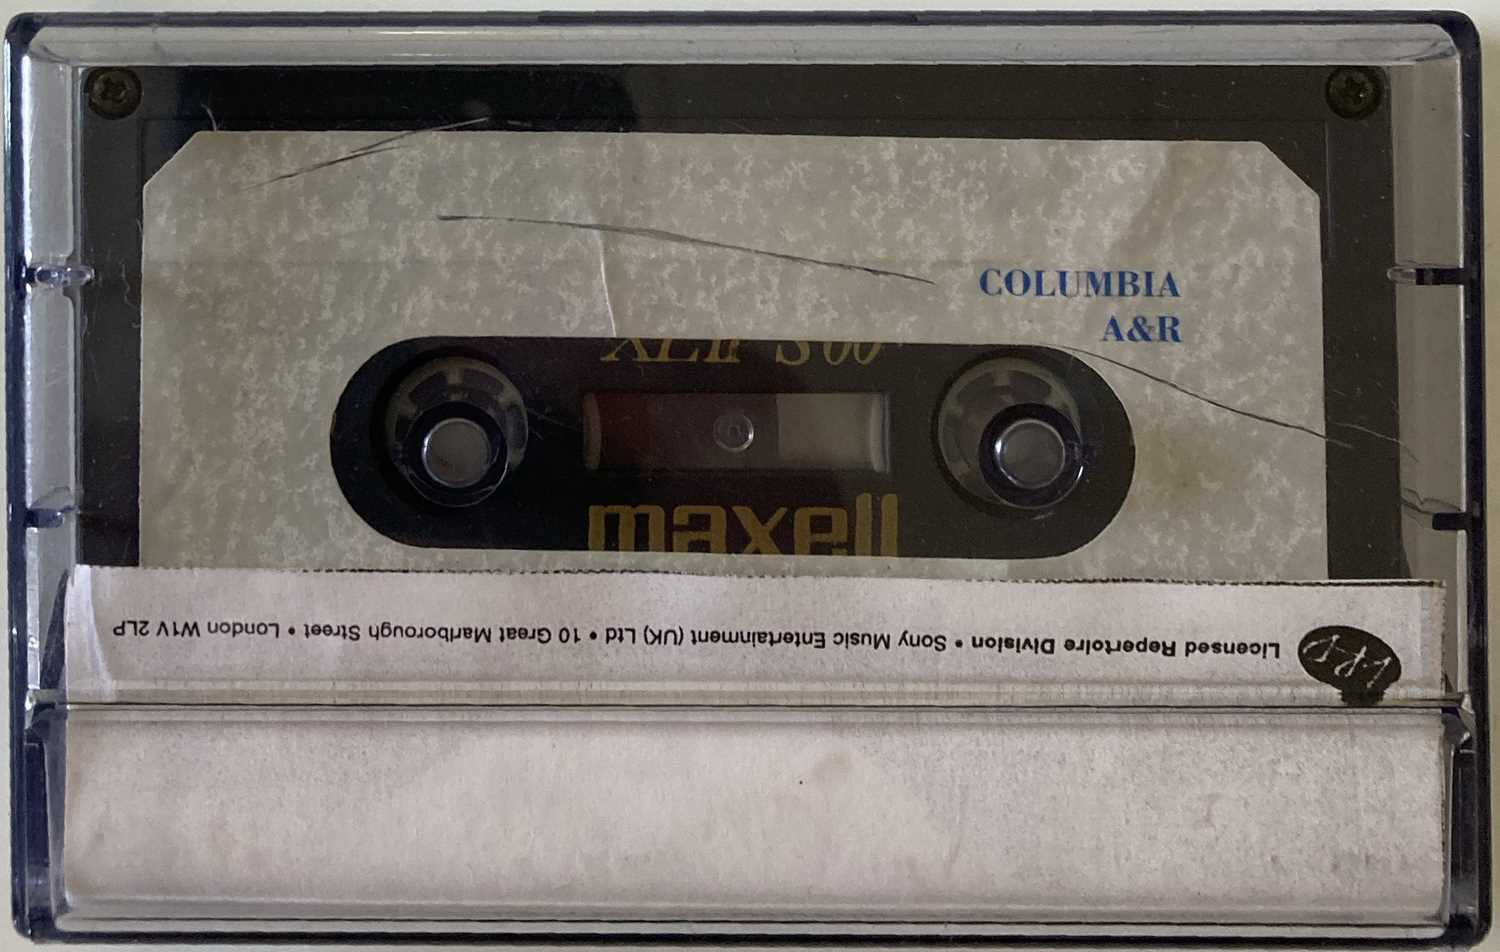 OASIS WHAT'S THE STORY 'LRD' PROMO CASSETTE. - Image 2 of 2